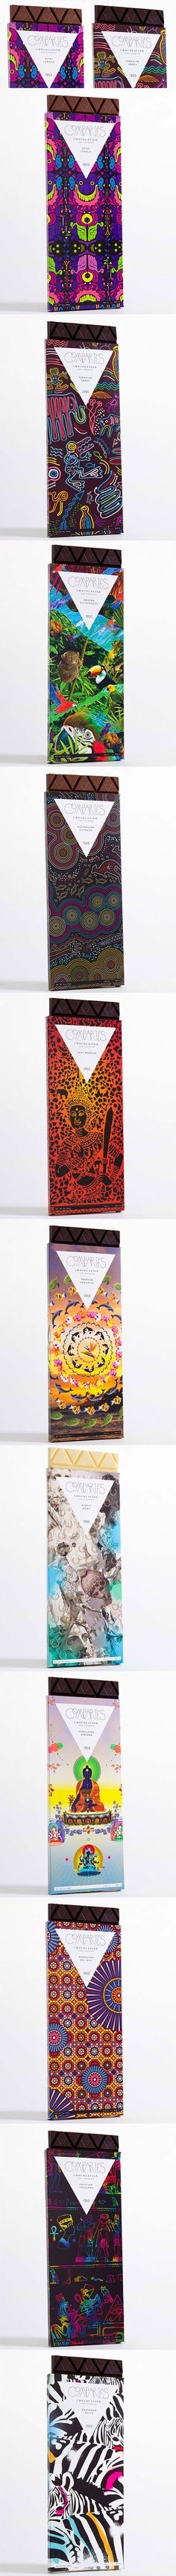 interesting packaging designs of chocolate. to order it, contact us.  #emballage #chocolat #chocolate #packaging #emballage #souple #flexible #packaging